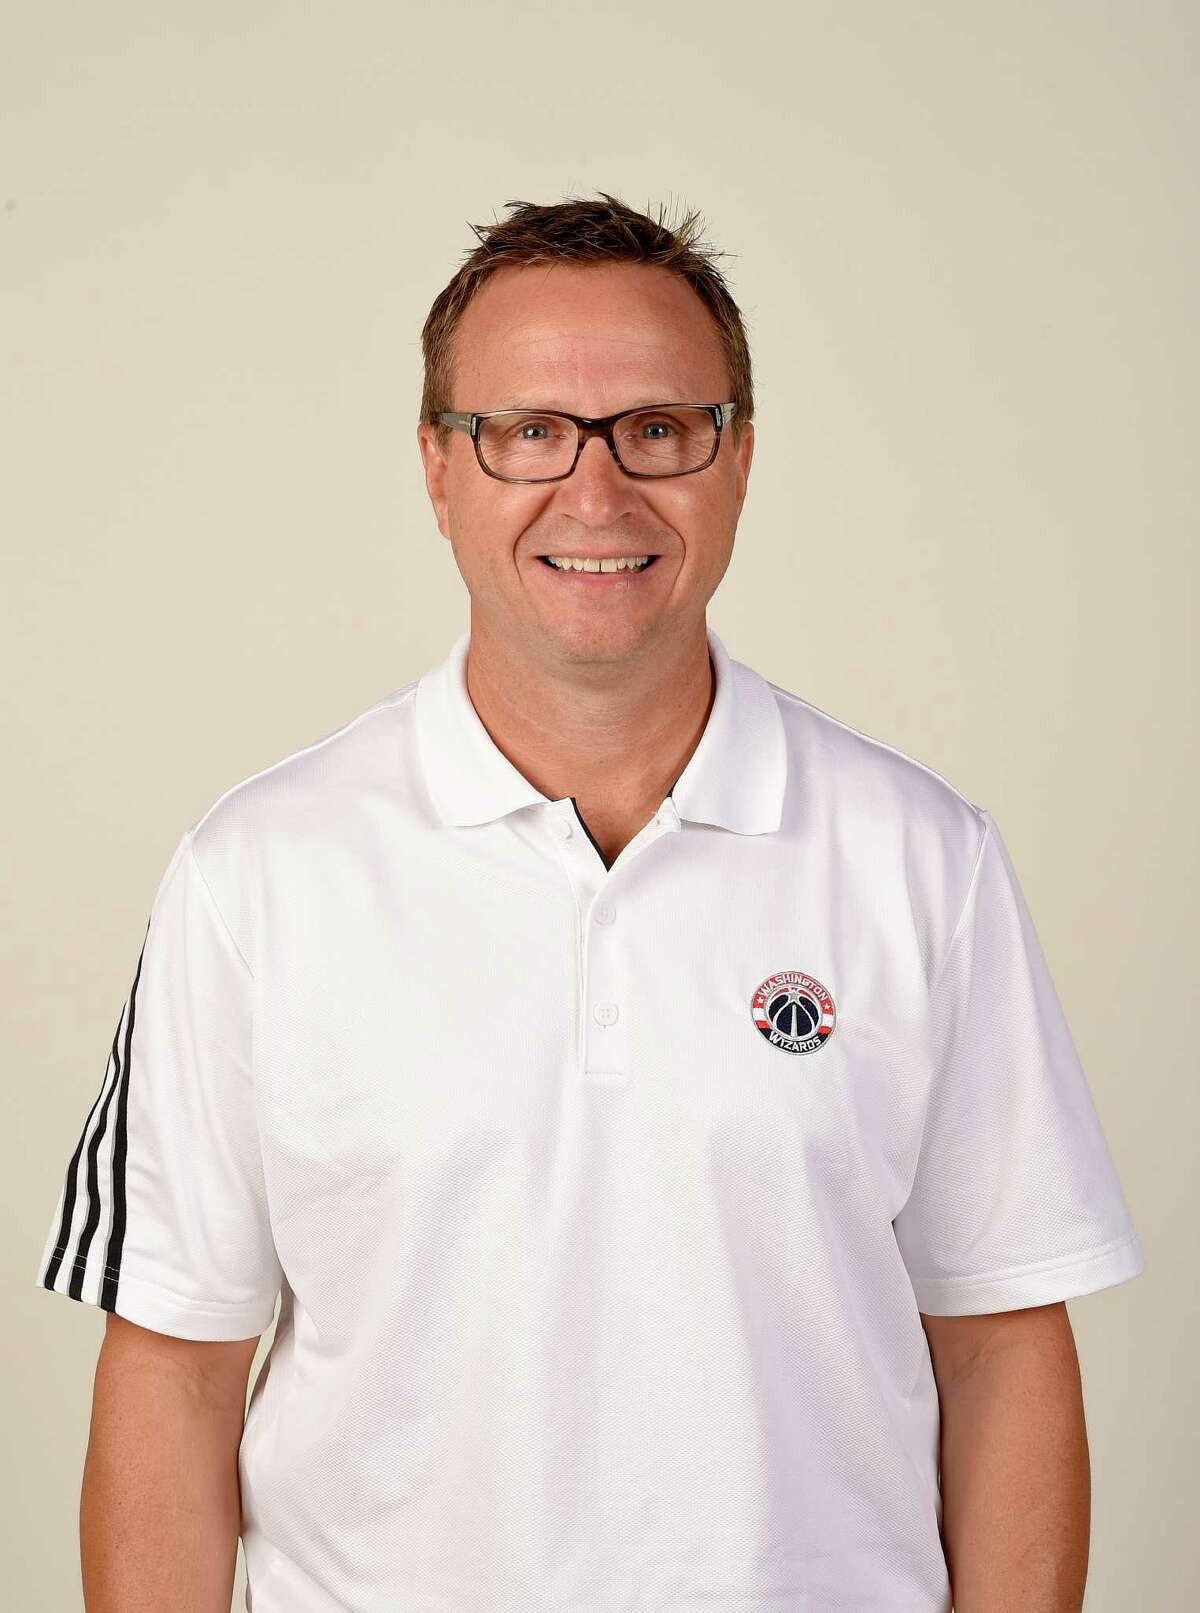 Washington Wizards head coach Scott Brooks poses for a photograph during an NBA basketball media day, Monday, Sept. 26, 2016, in Washington. (AP Photo/Nick Wass)